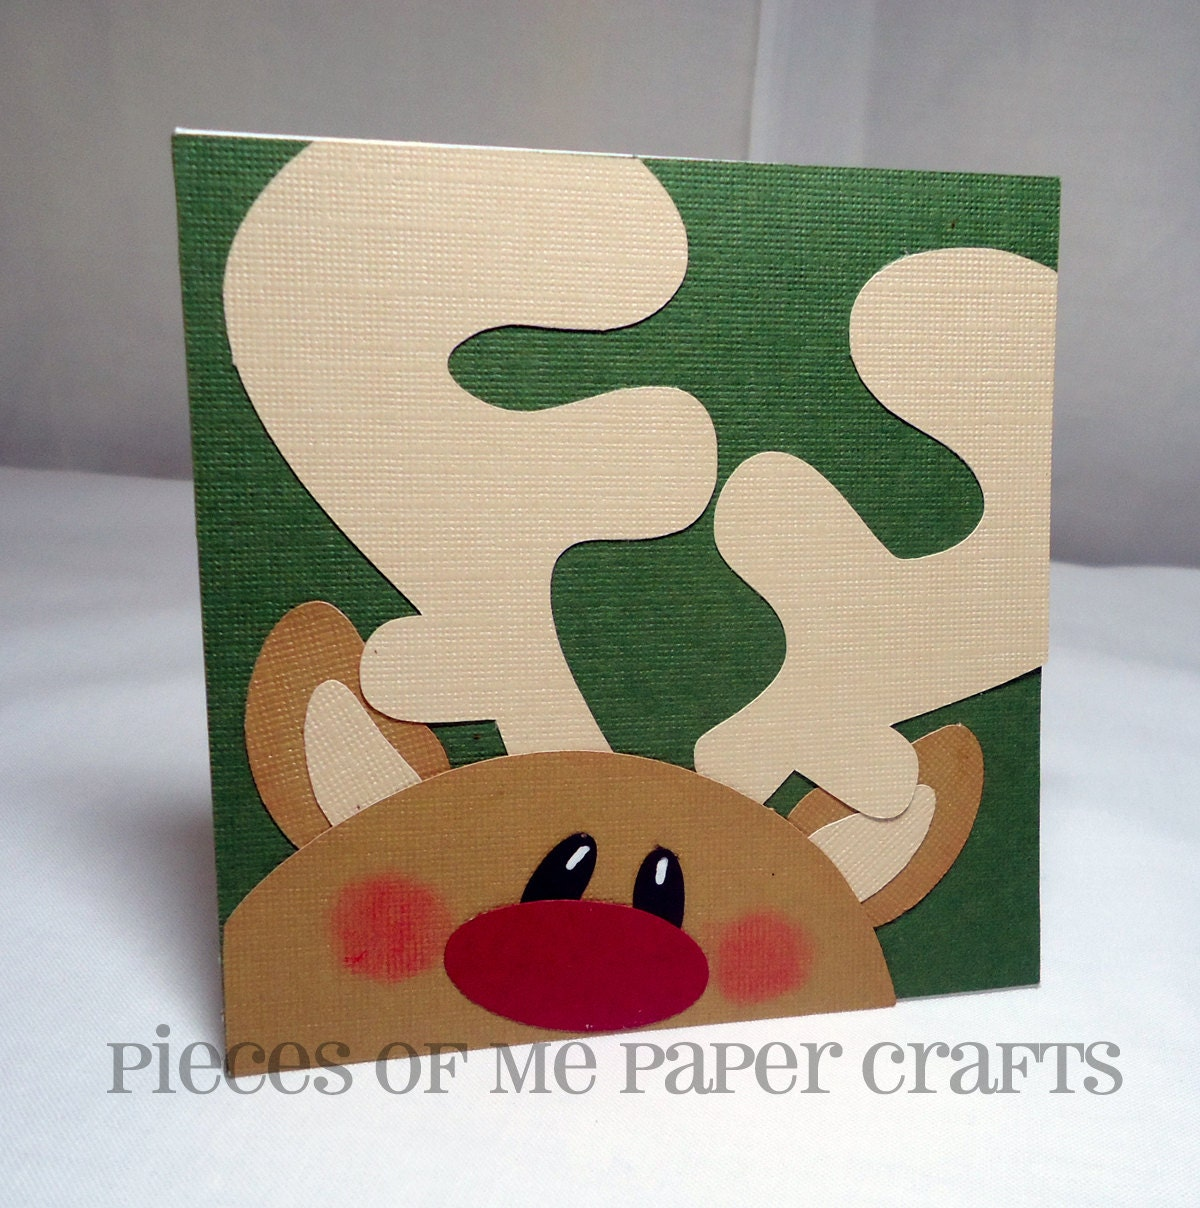 Pieces of me scrapbooking paper crafts winter faces for How to make handmade christmas cards